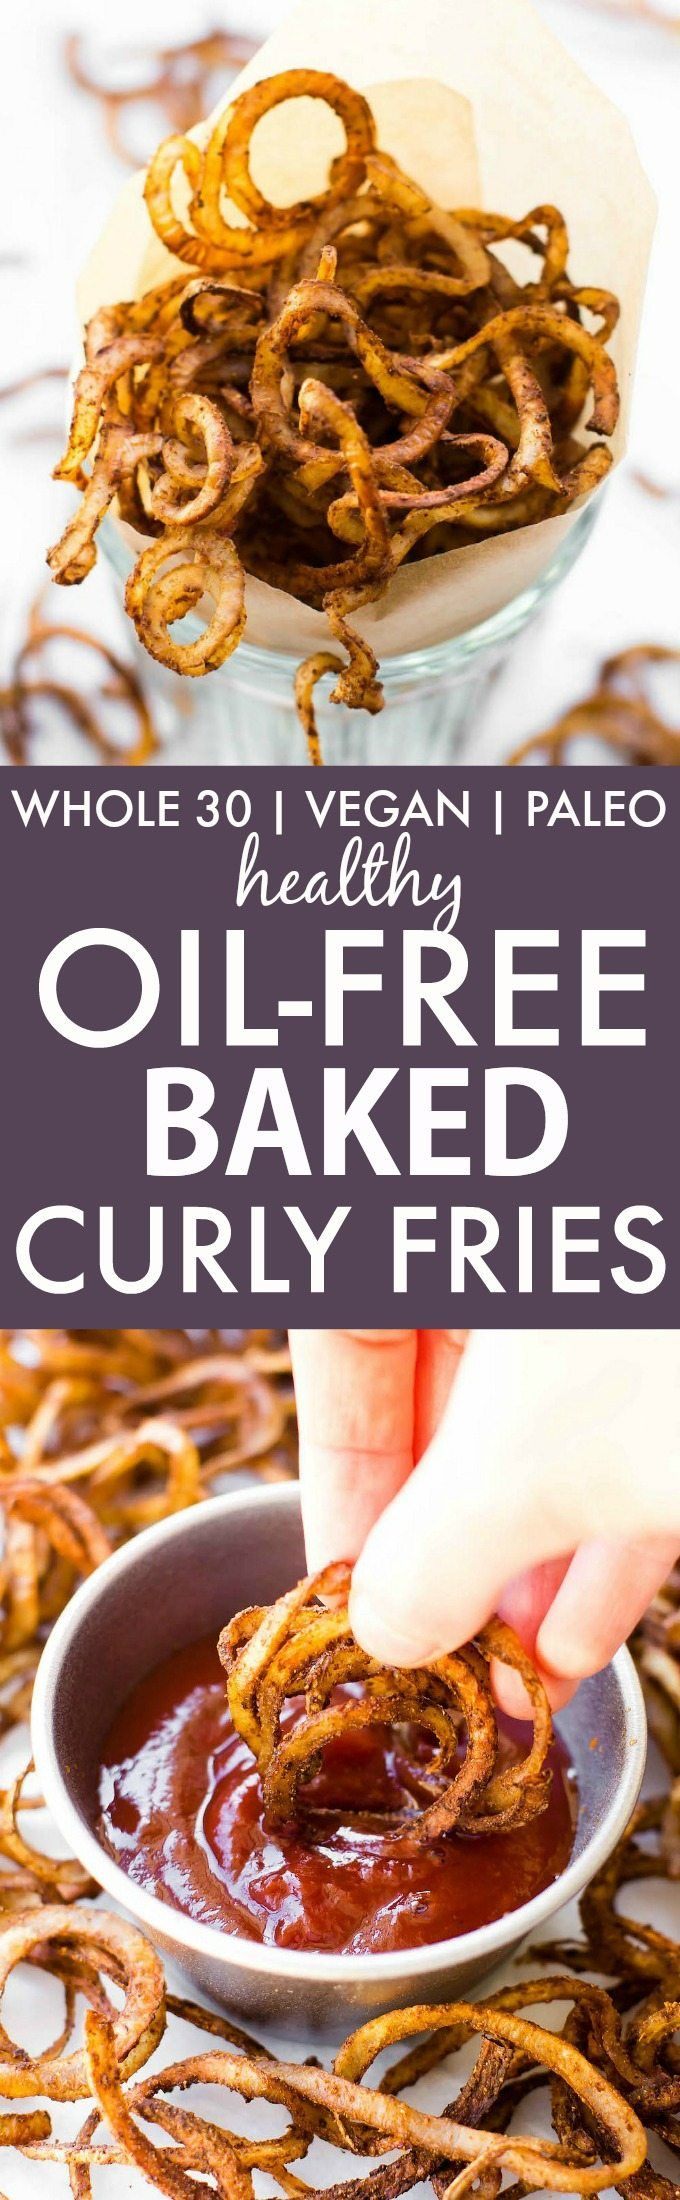 Oil-Free Baked Curly Fries that taste so much like the fried fast food original it's hard to believe they are healthy!!